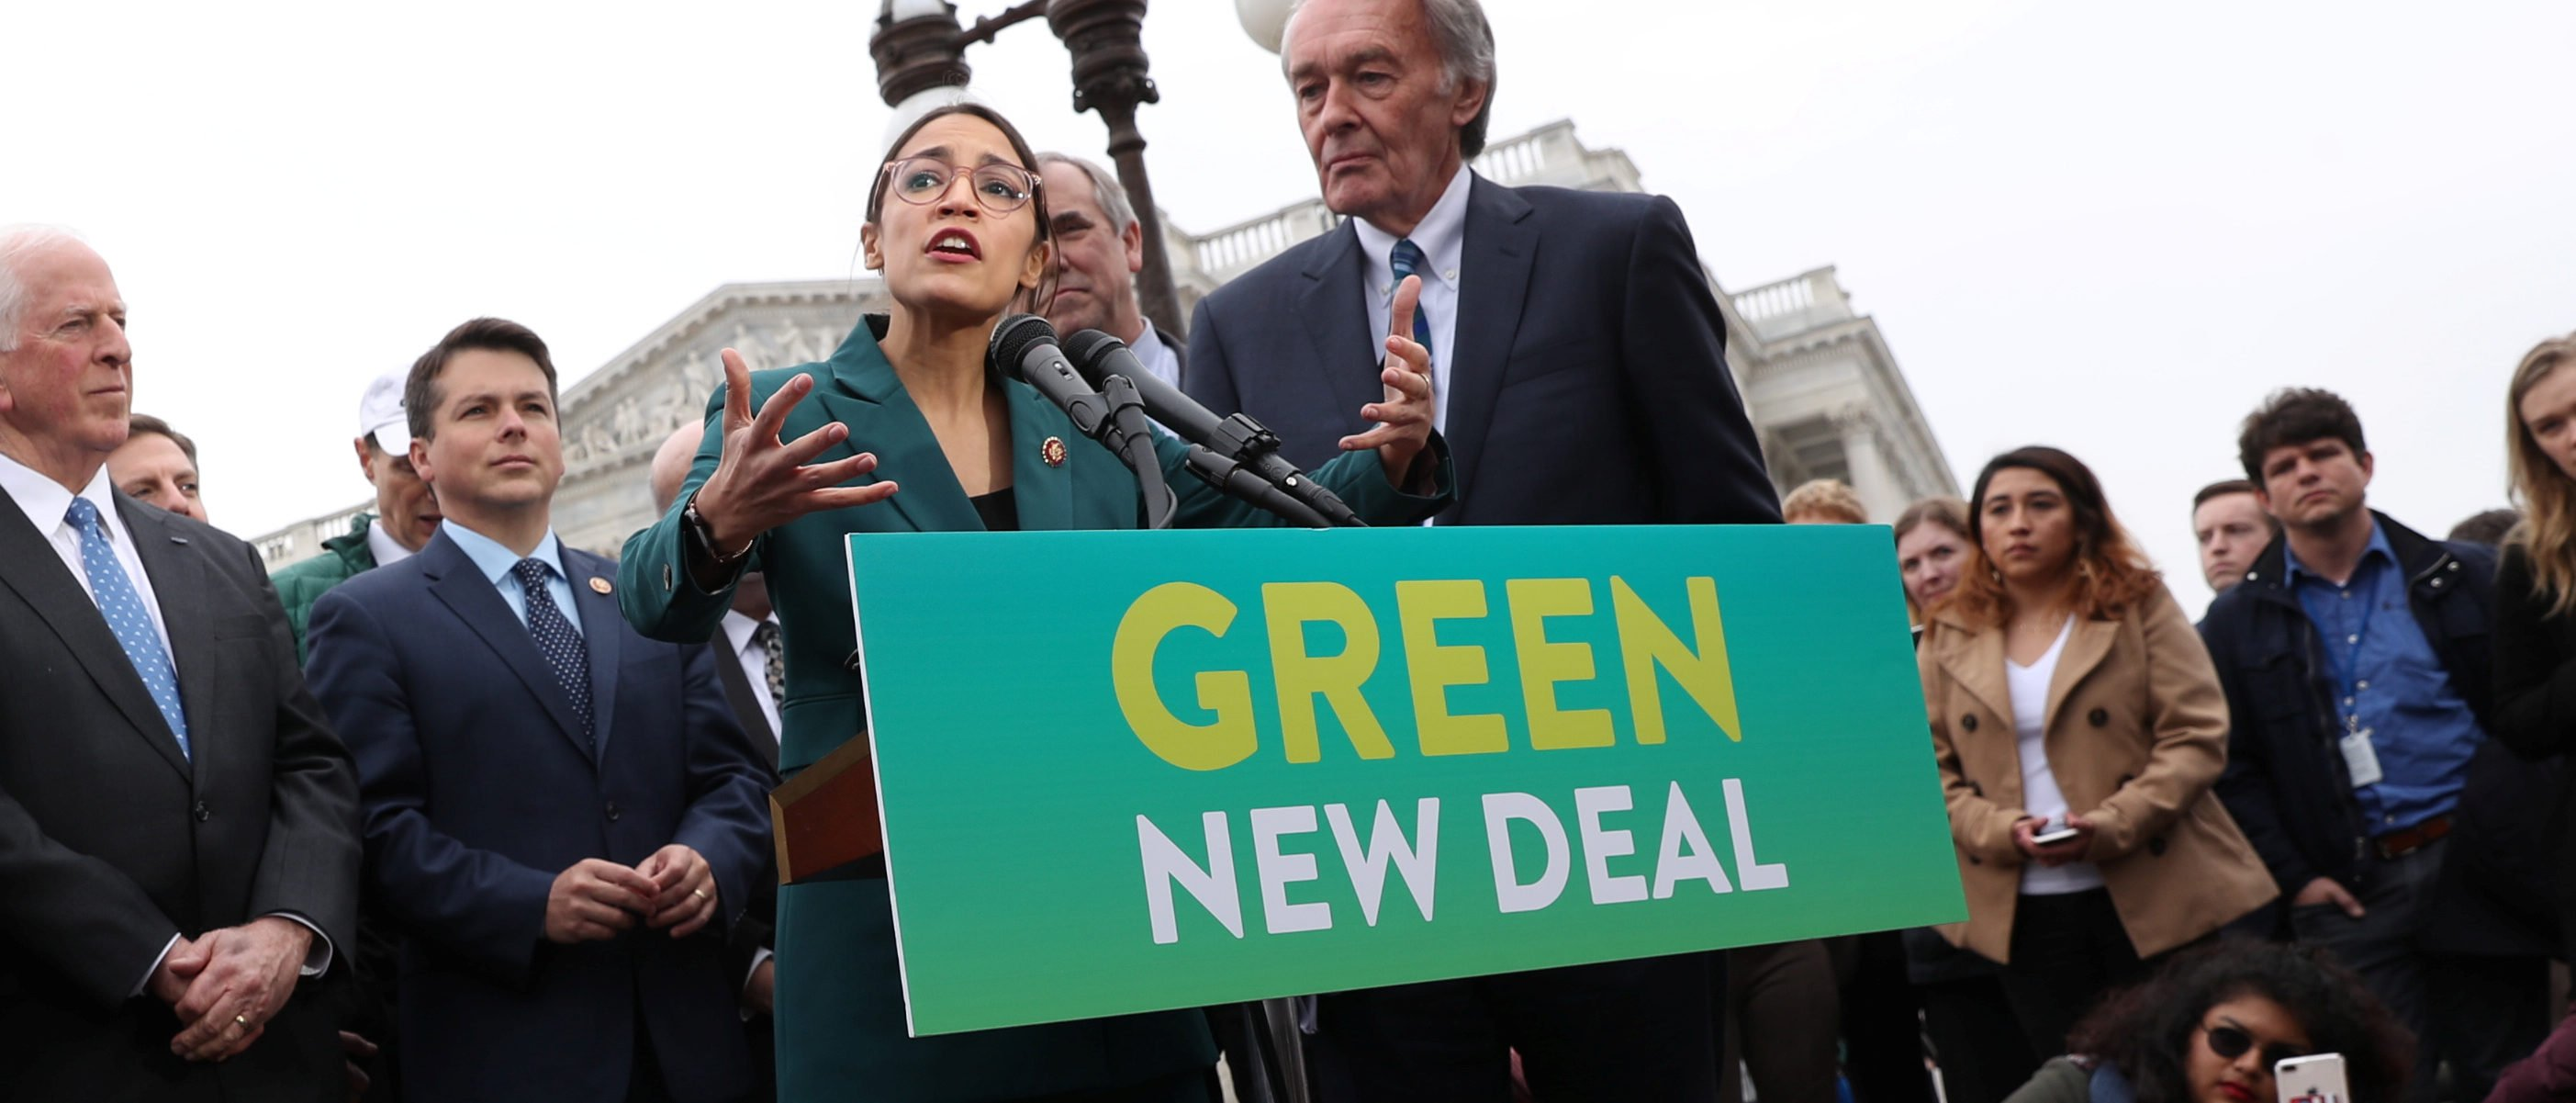 "U.S. Representative Alexandria Ocasio-Cortez (D-NY) and Senator Ed Markey (D-MA) hold a news conference for their proposed ""Green New Deal"" to achieve net-zero greenhouse gas emissions in 10 years, at the U.S. Capitol in Washington, U.S. February 7, 2019. REUTERS/Jonathan Ernst"